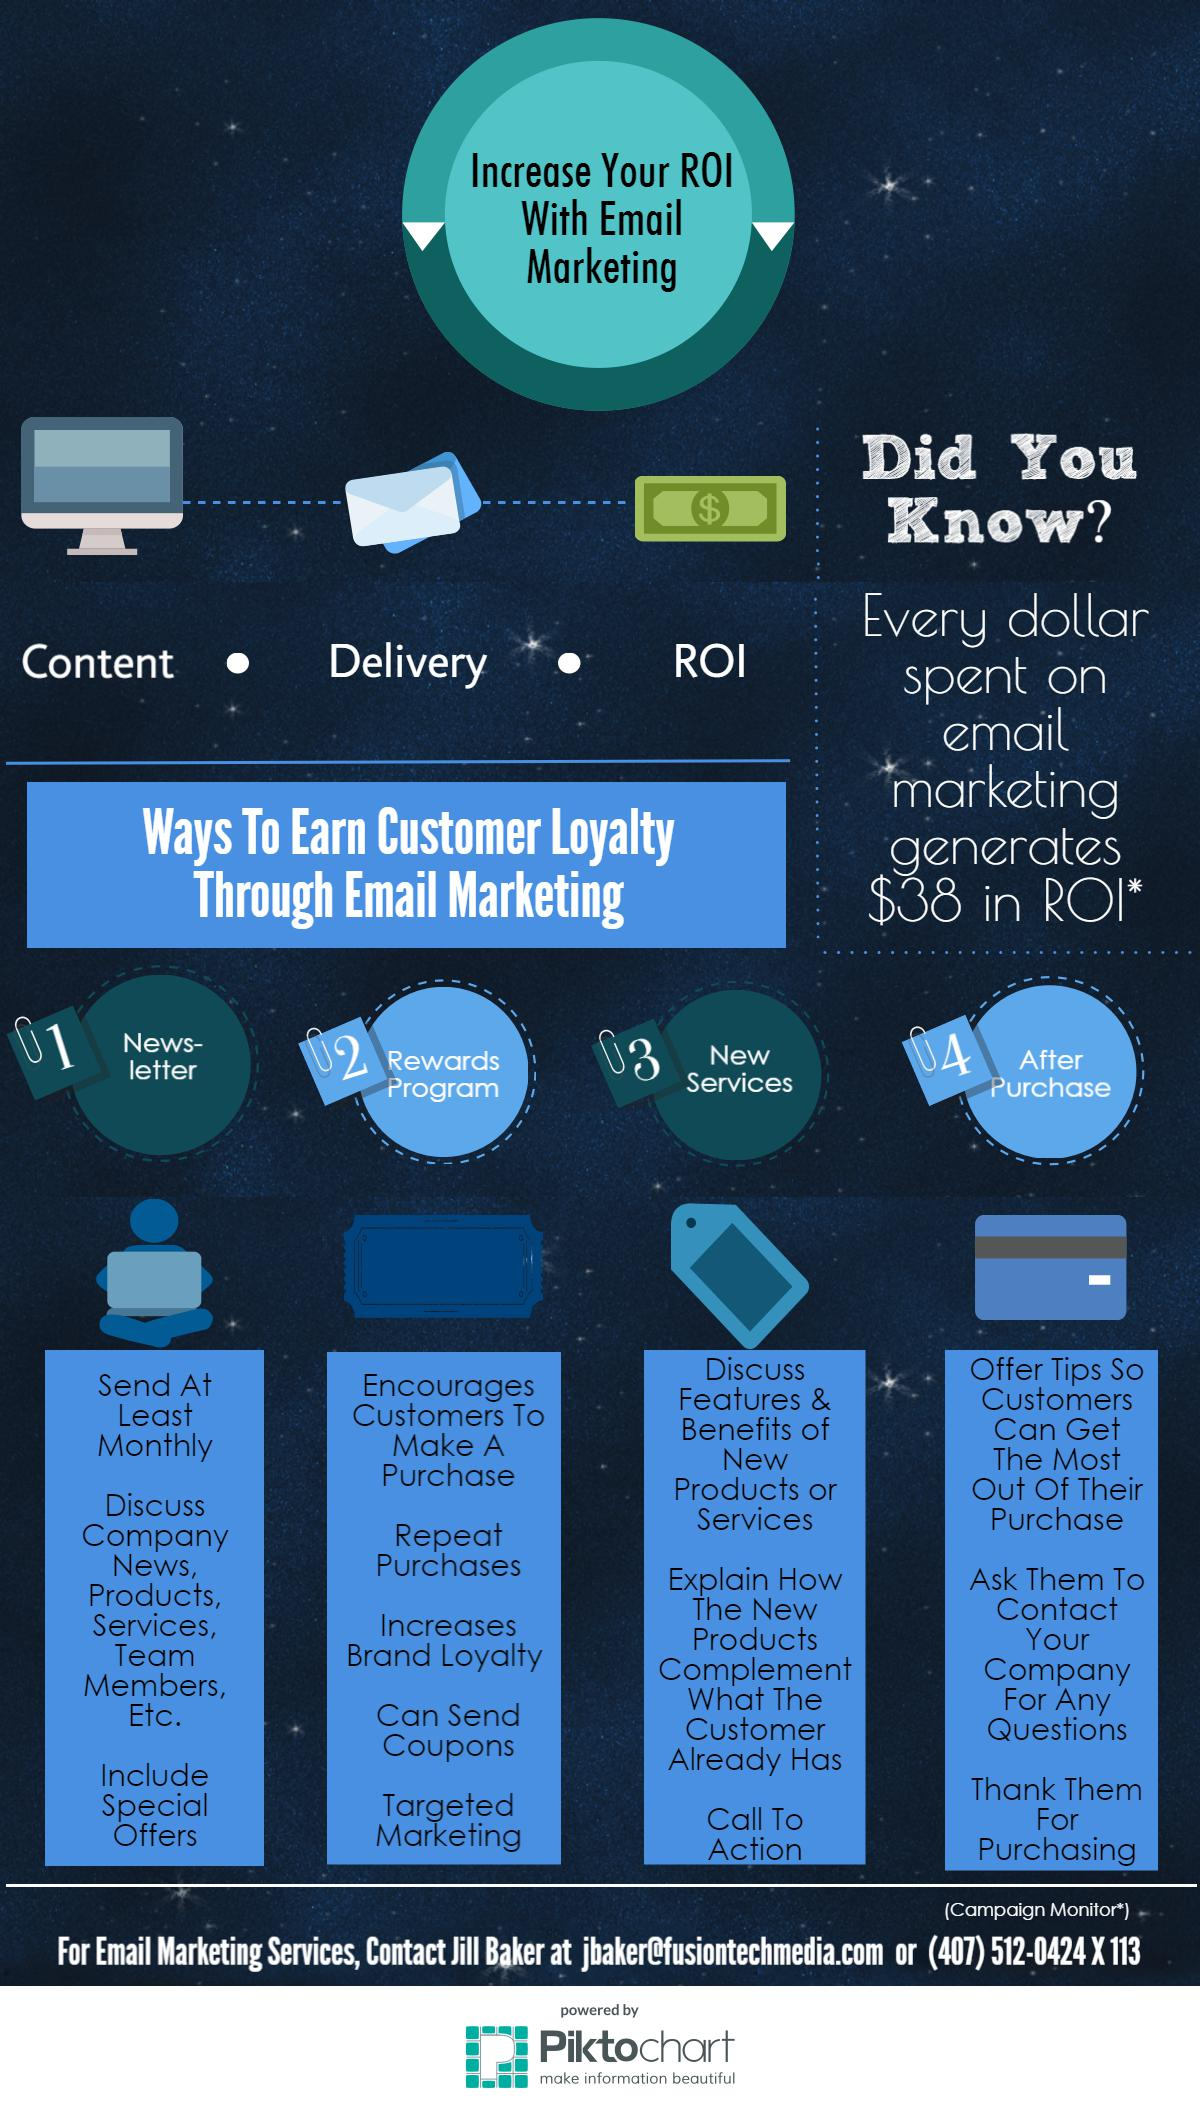 Increase Revenue With Email Marketing Infographic